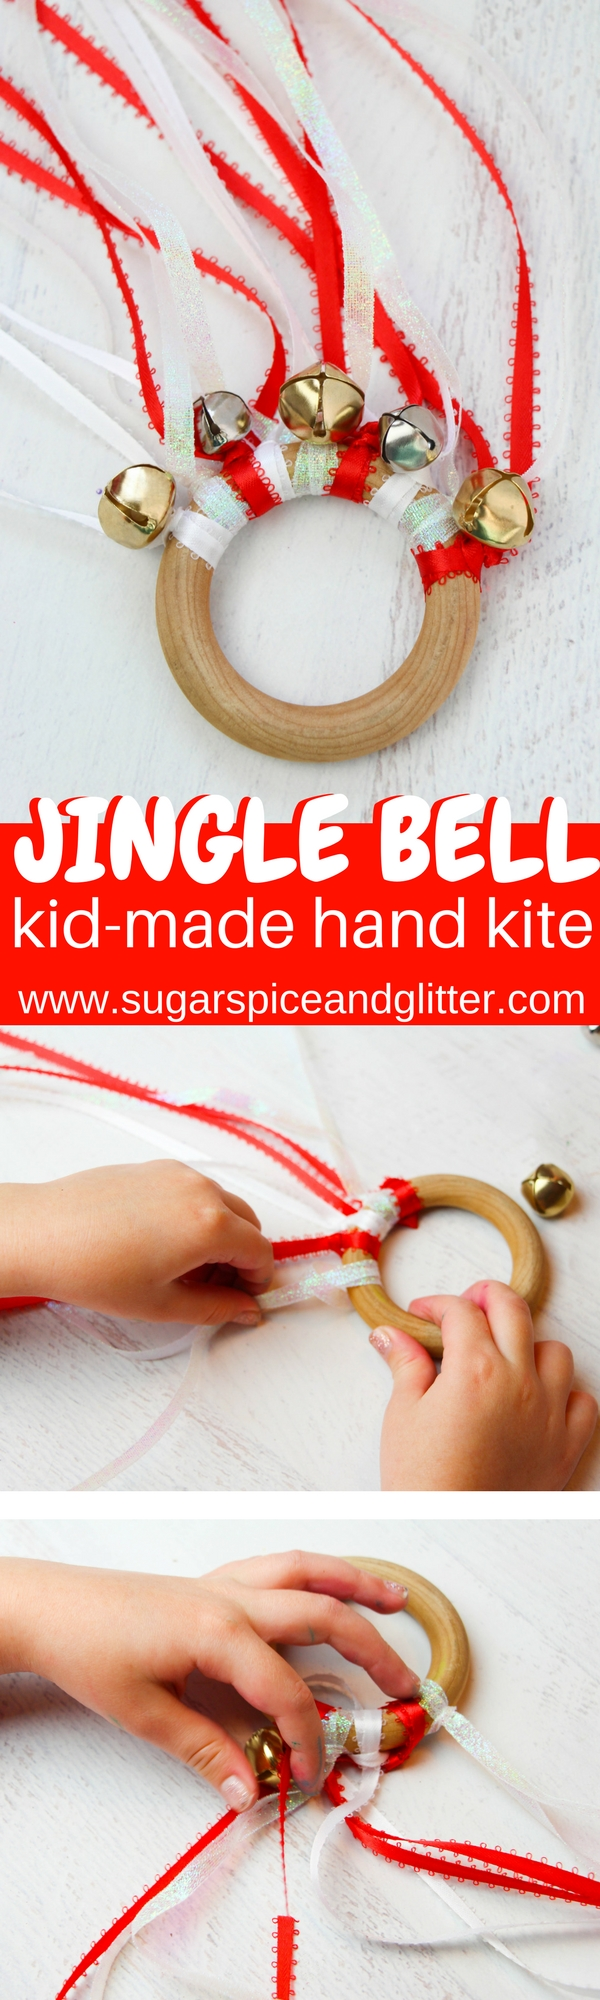 DIY Waldorf Hand Kite that kids can make. This jingly, dancing ring is a great homemade gift for toddlers or preschoolers and they last forever! Just replace the ribbons if they get a bit worn.